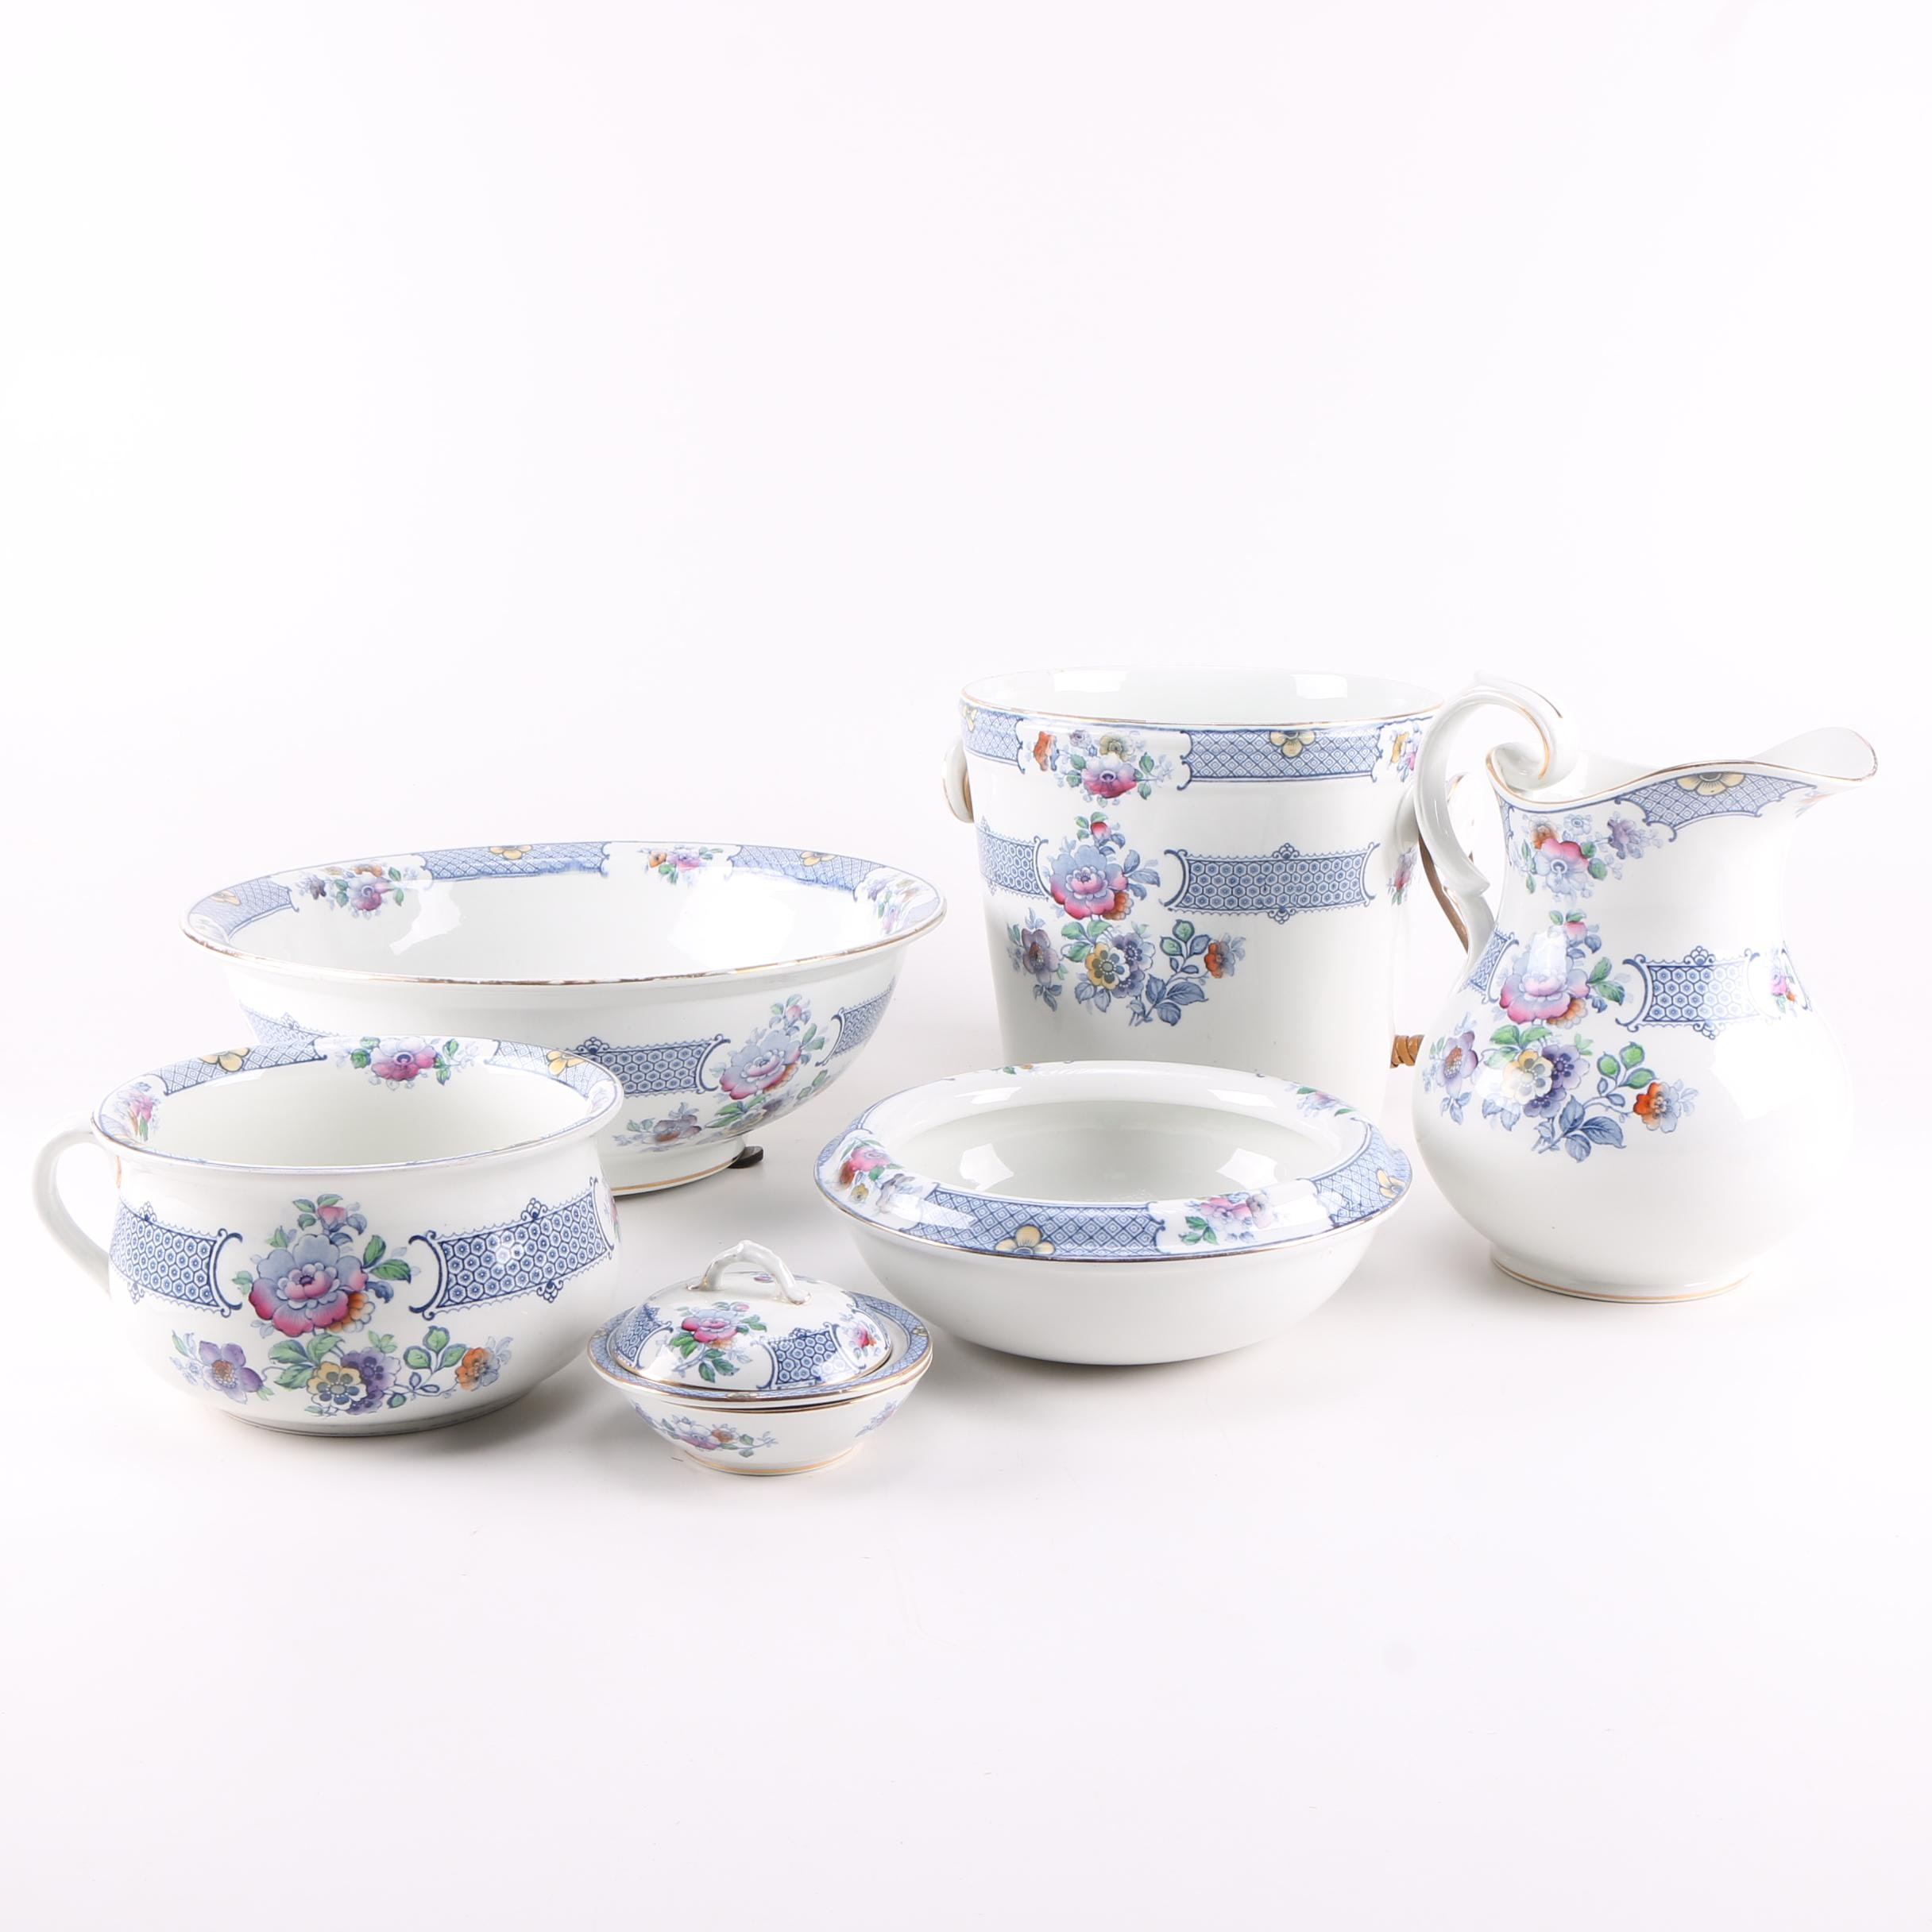 1900s Whieldon Ware Floral Chamber Set by F. Winkle & Co. Ld.